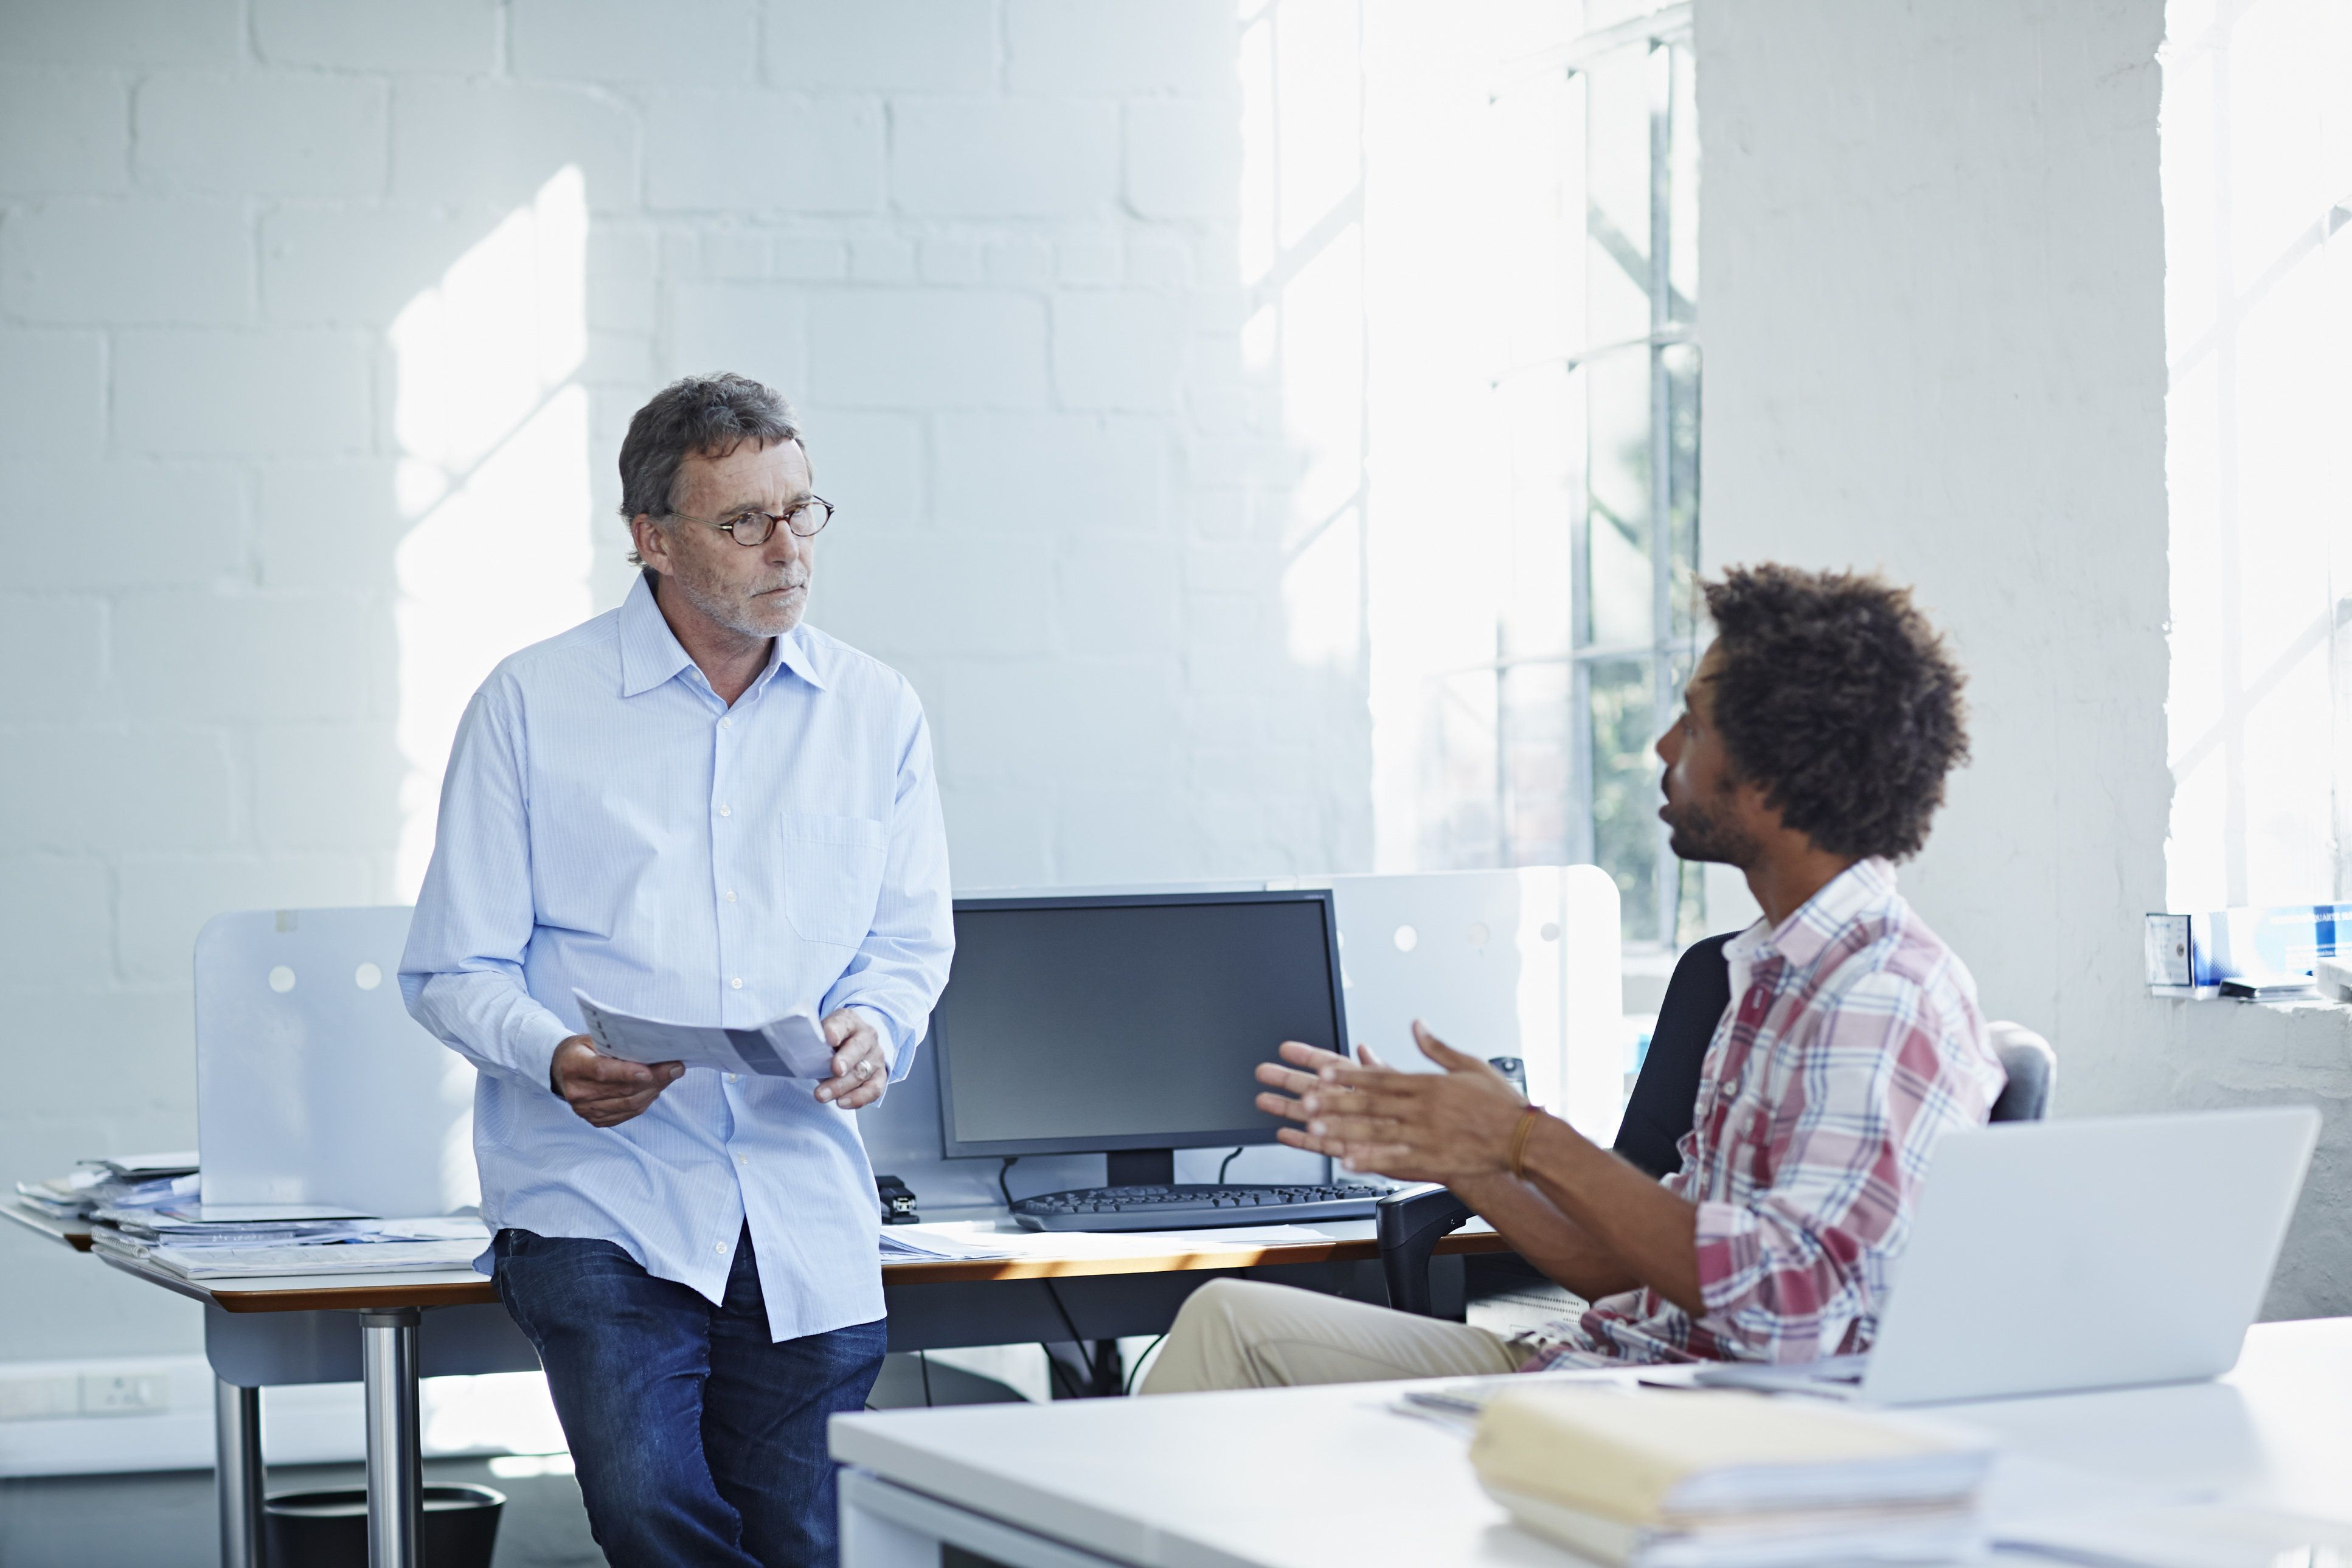 Businessman exposing project to peer in bright office